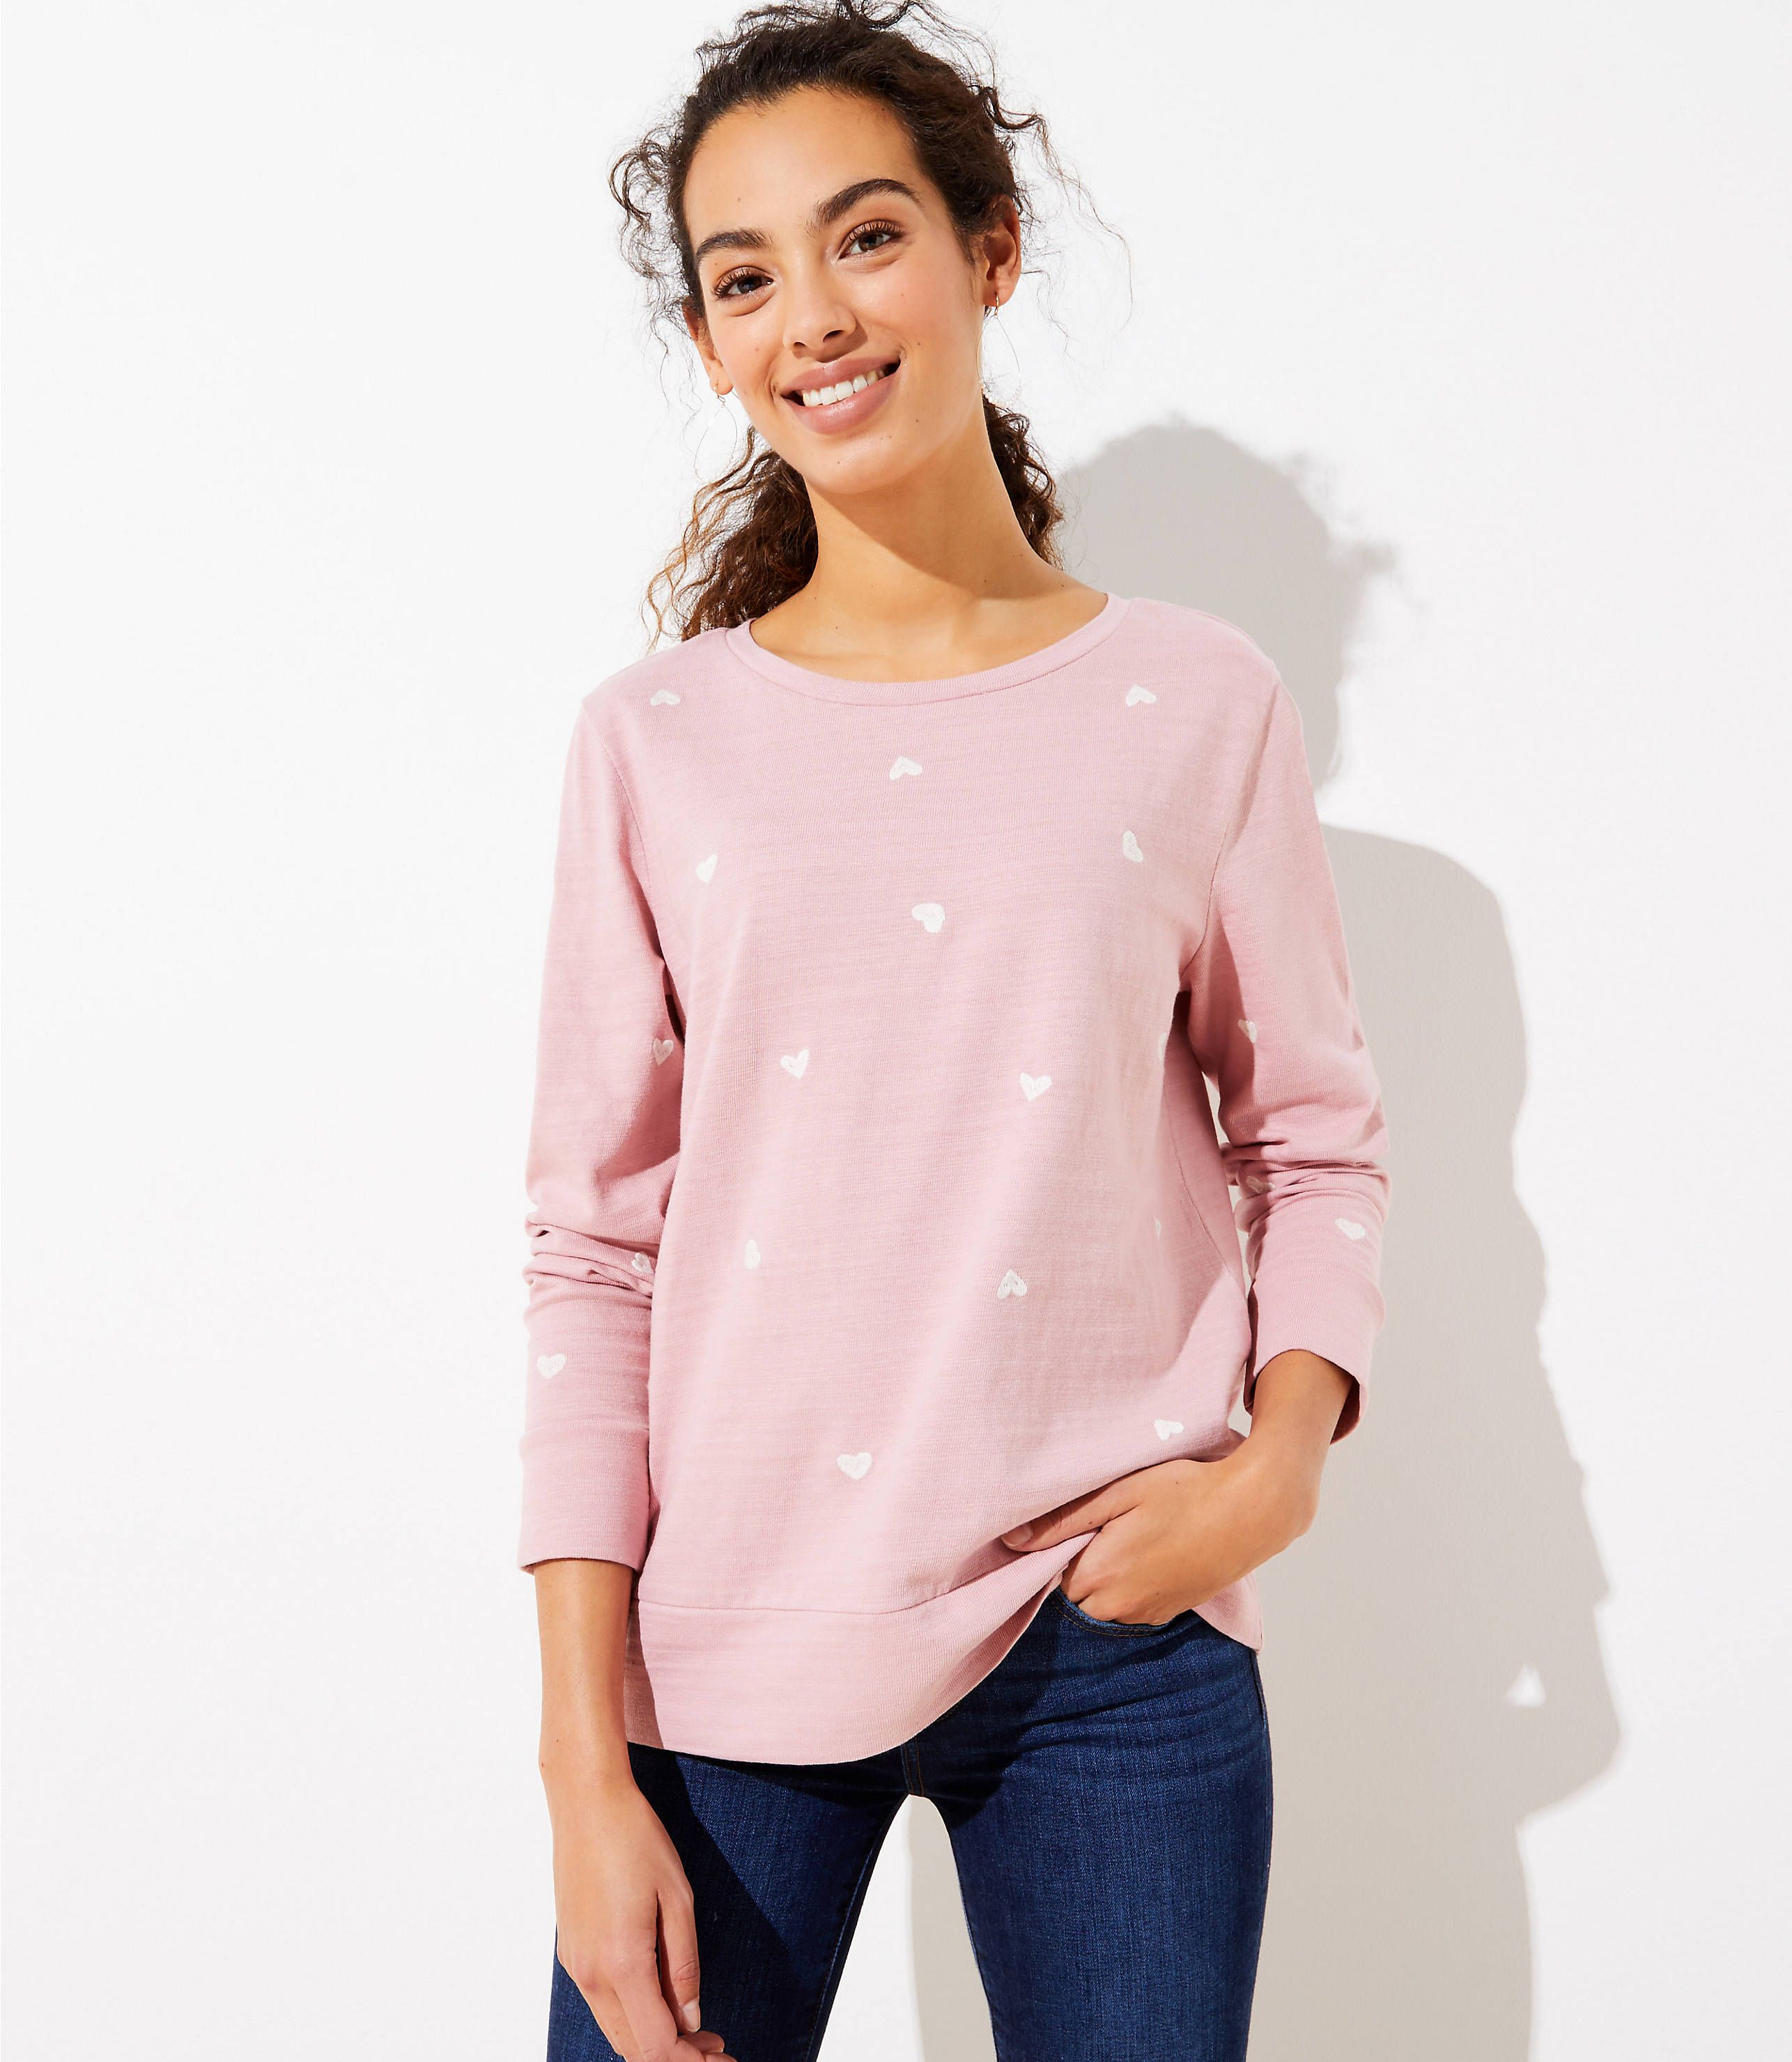 Heart Embroidered Sweatshirt LOFT in 2020 Embroidered